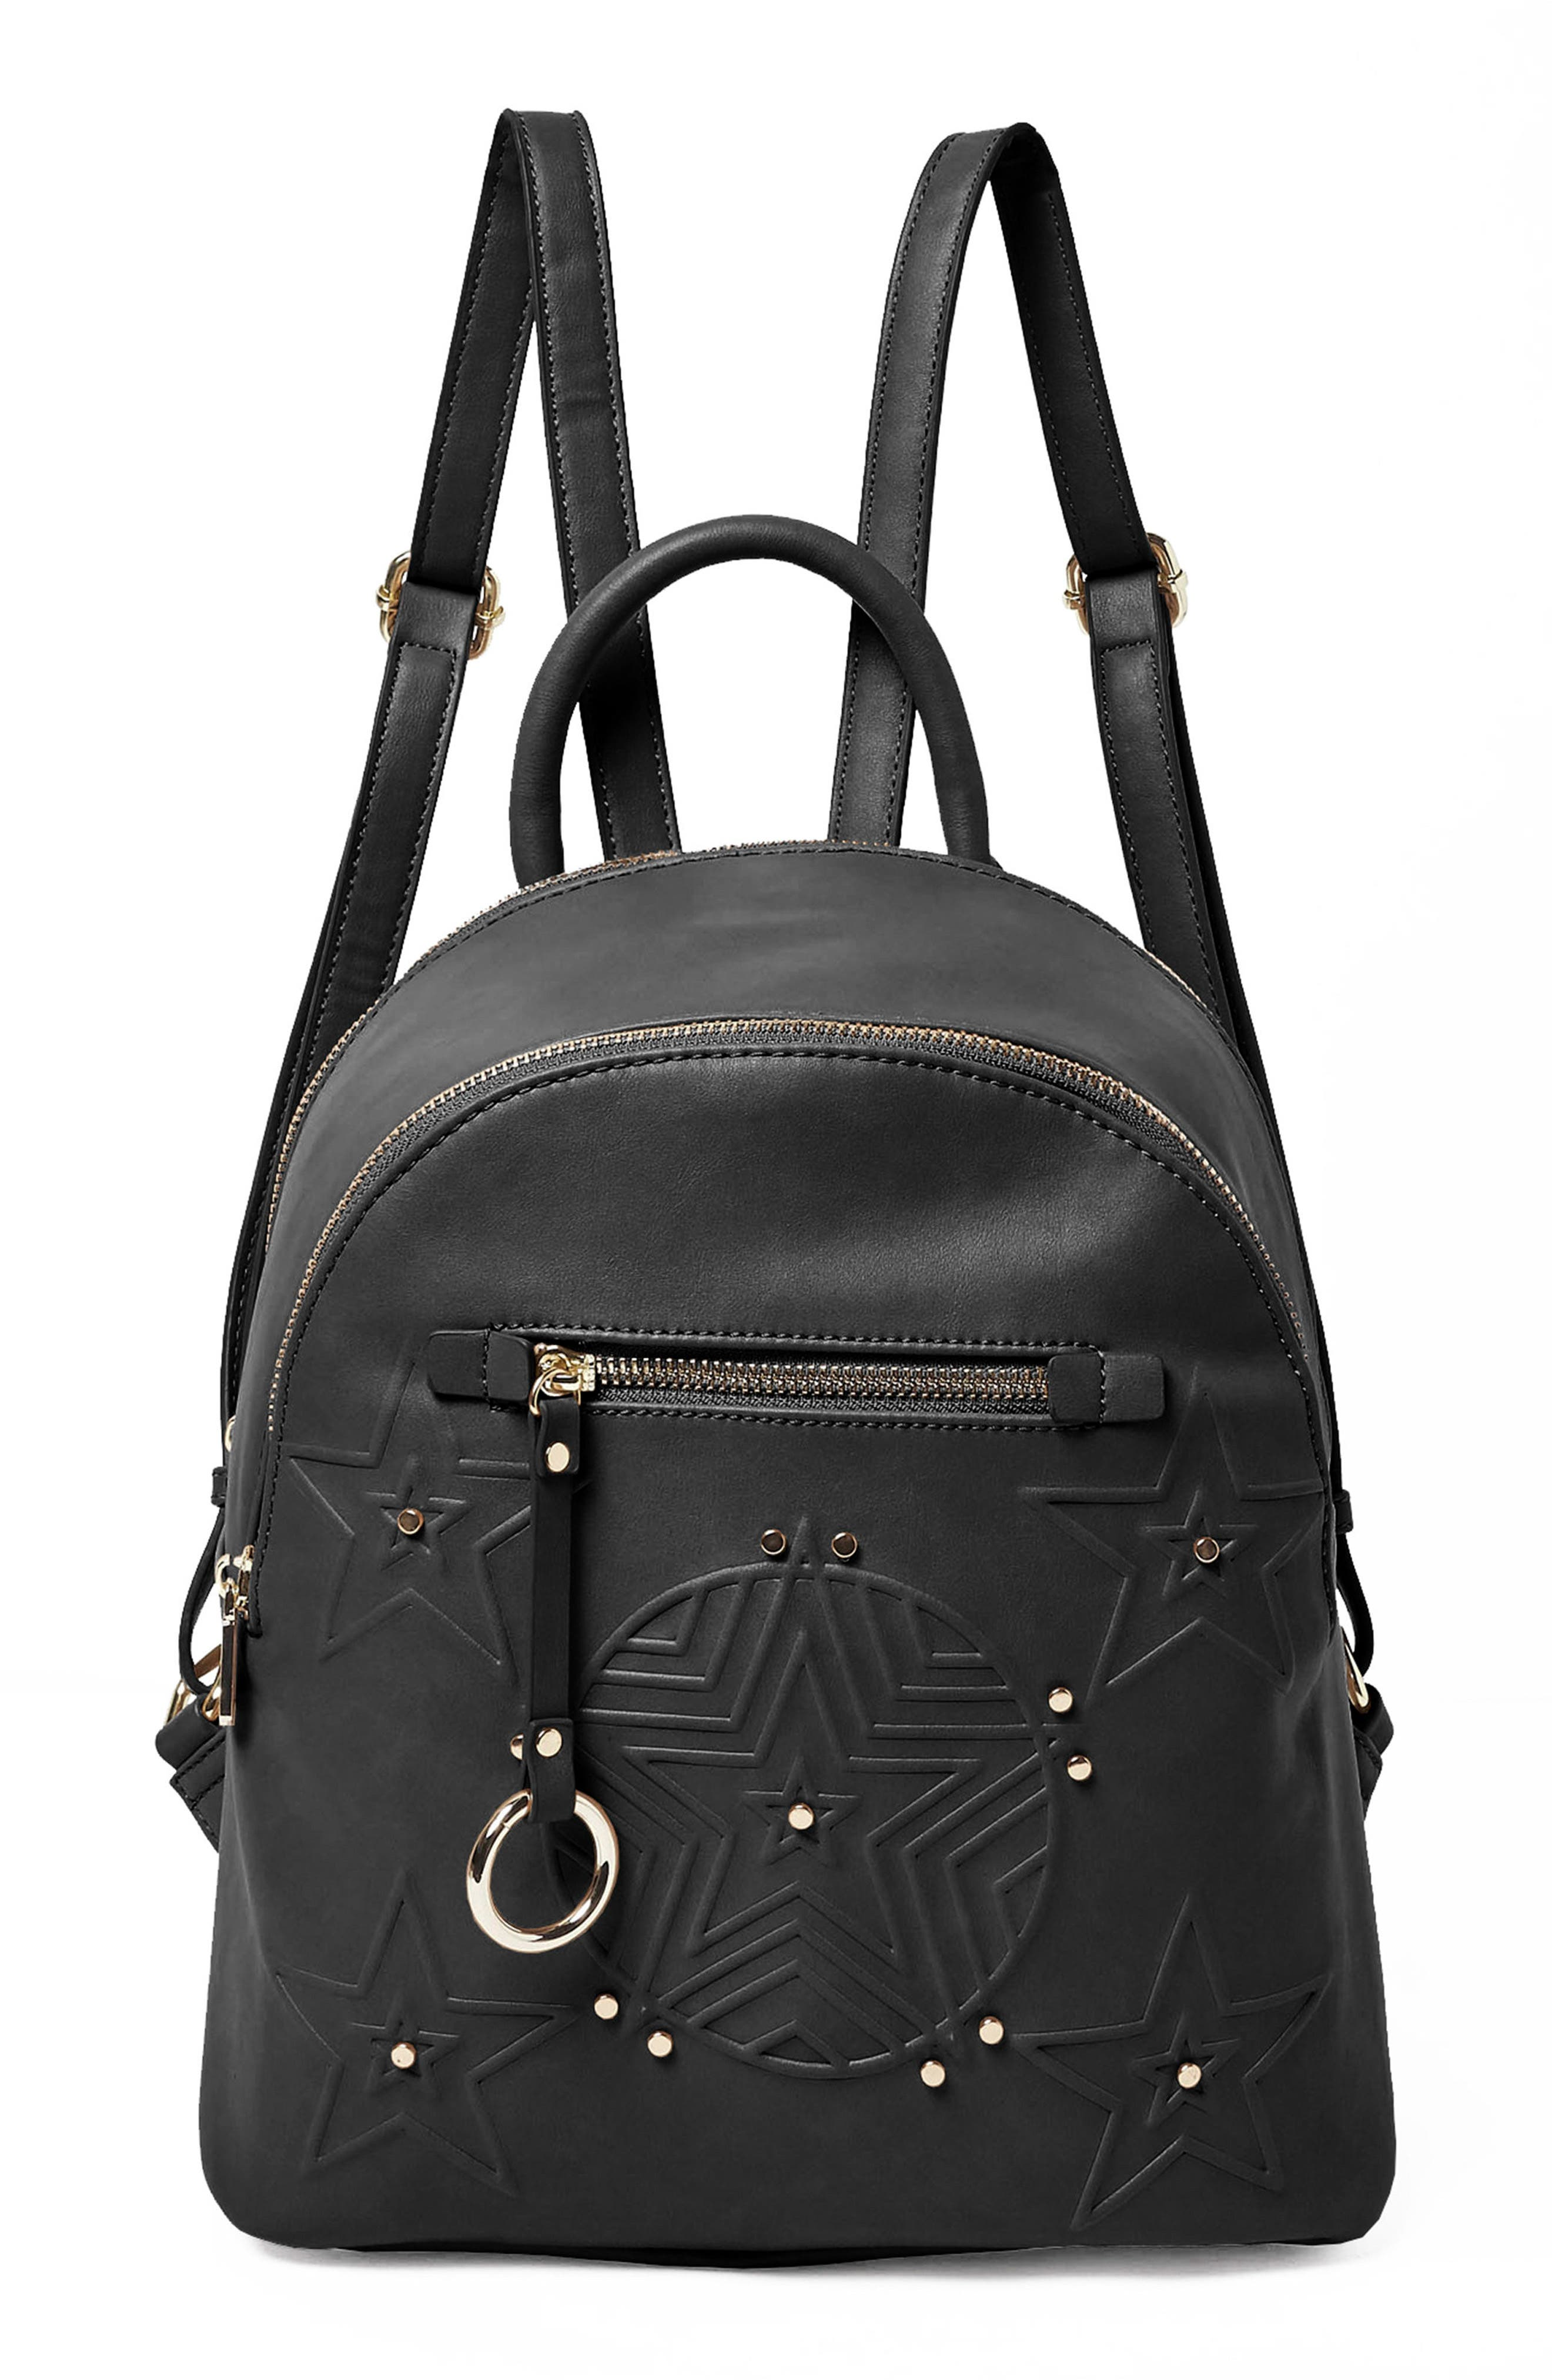 Urban Originals CELESTIAL VEGAN LEATHER BACKPACK - BLACK